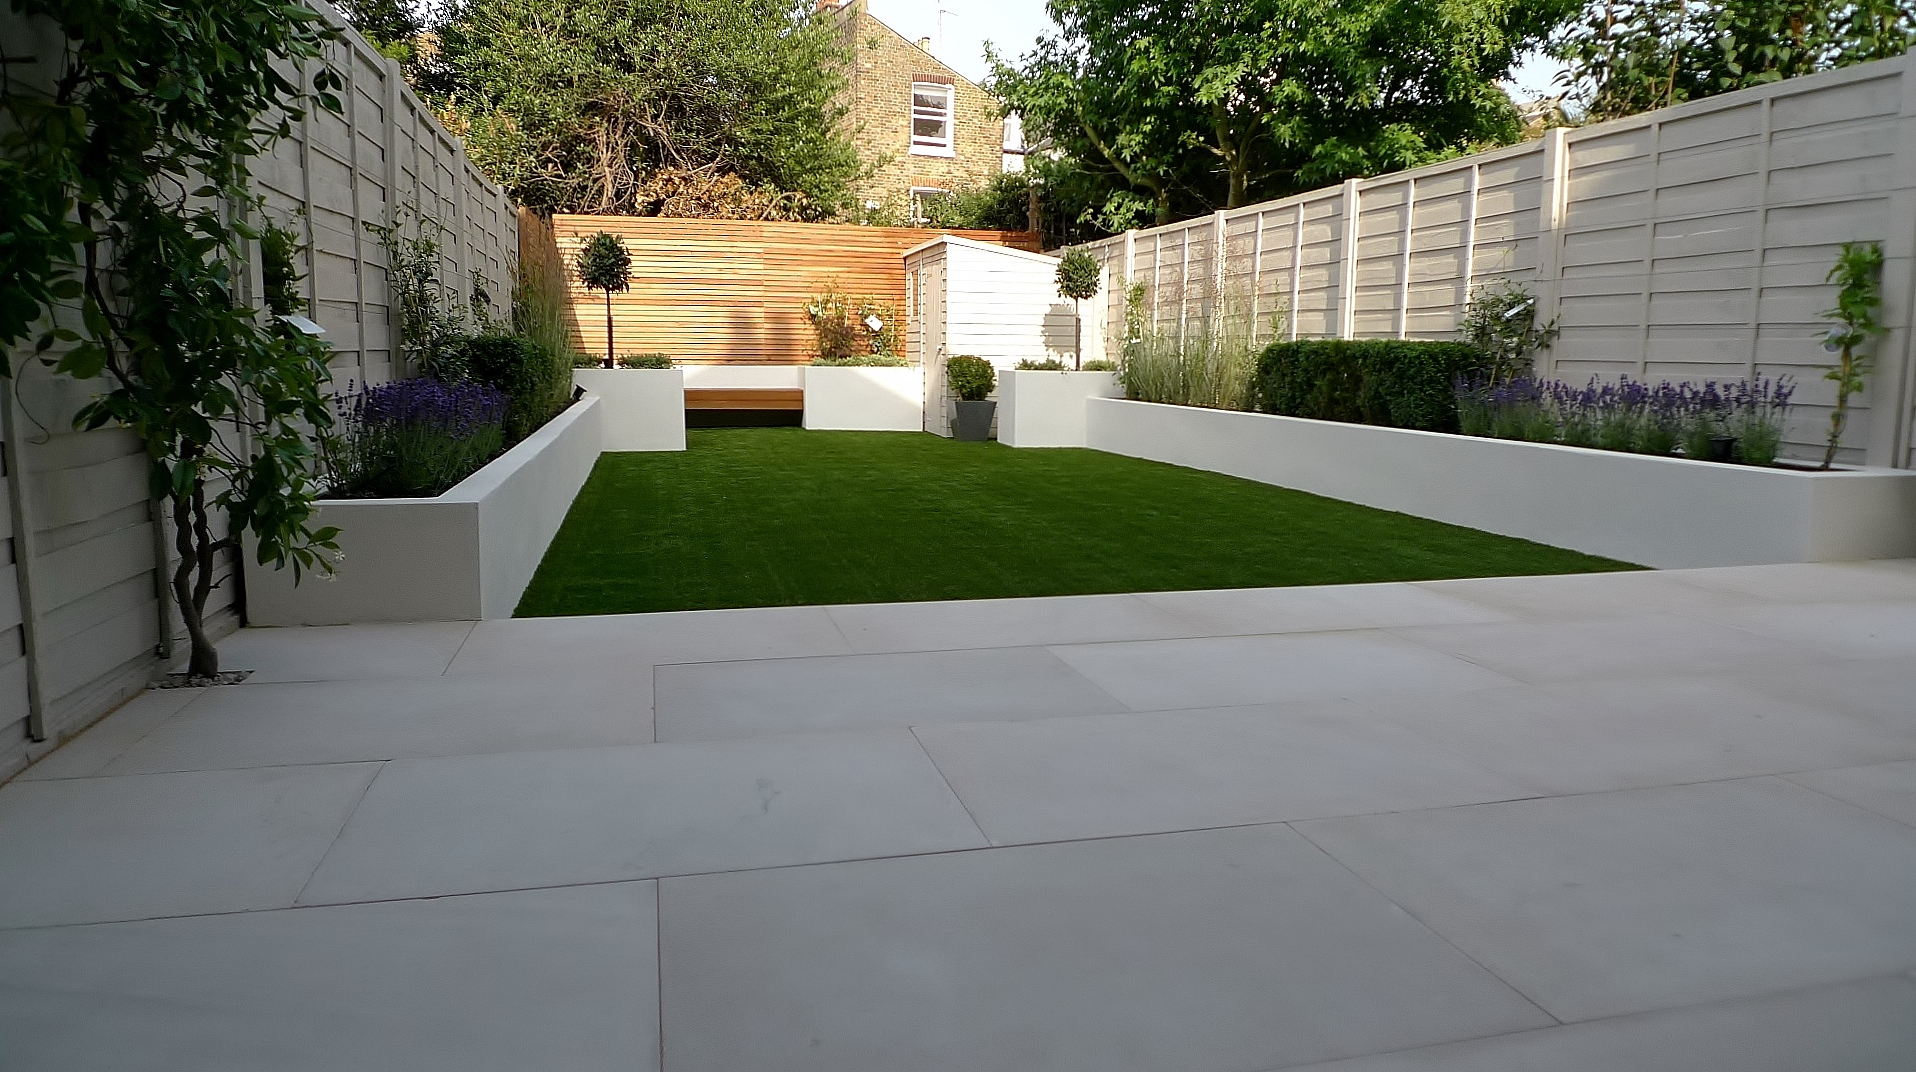 Modern balham garden design london garden design for Paving stone garden designs